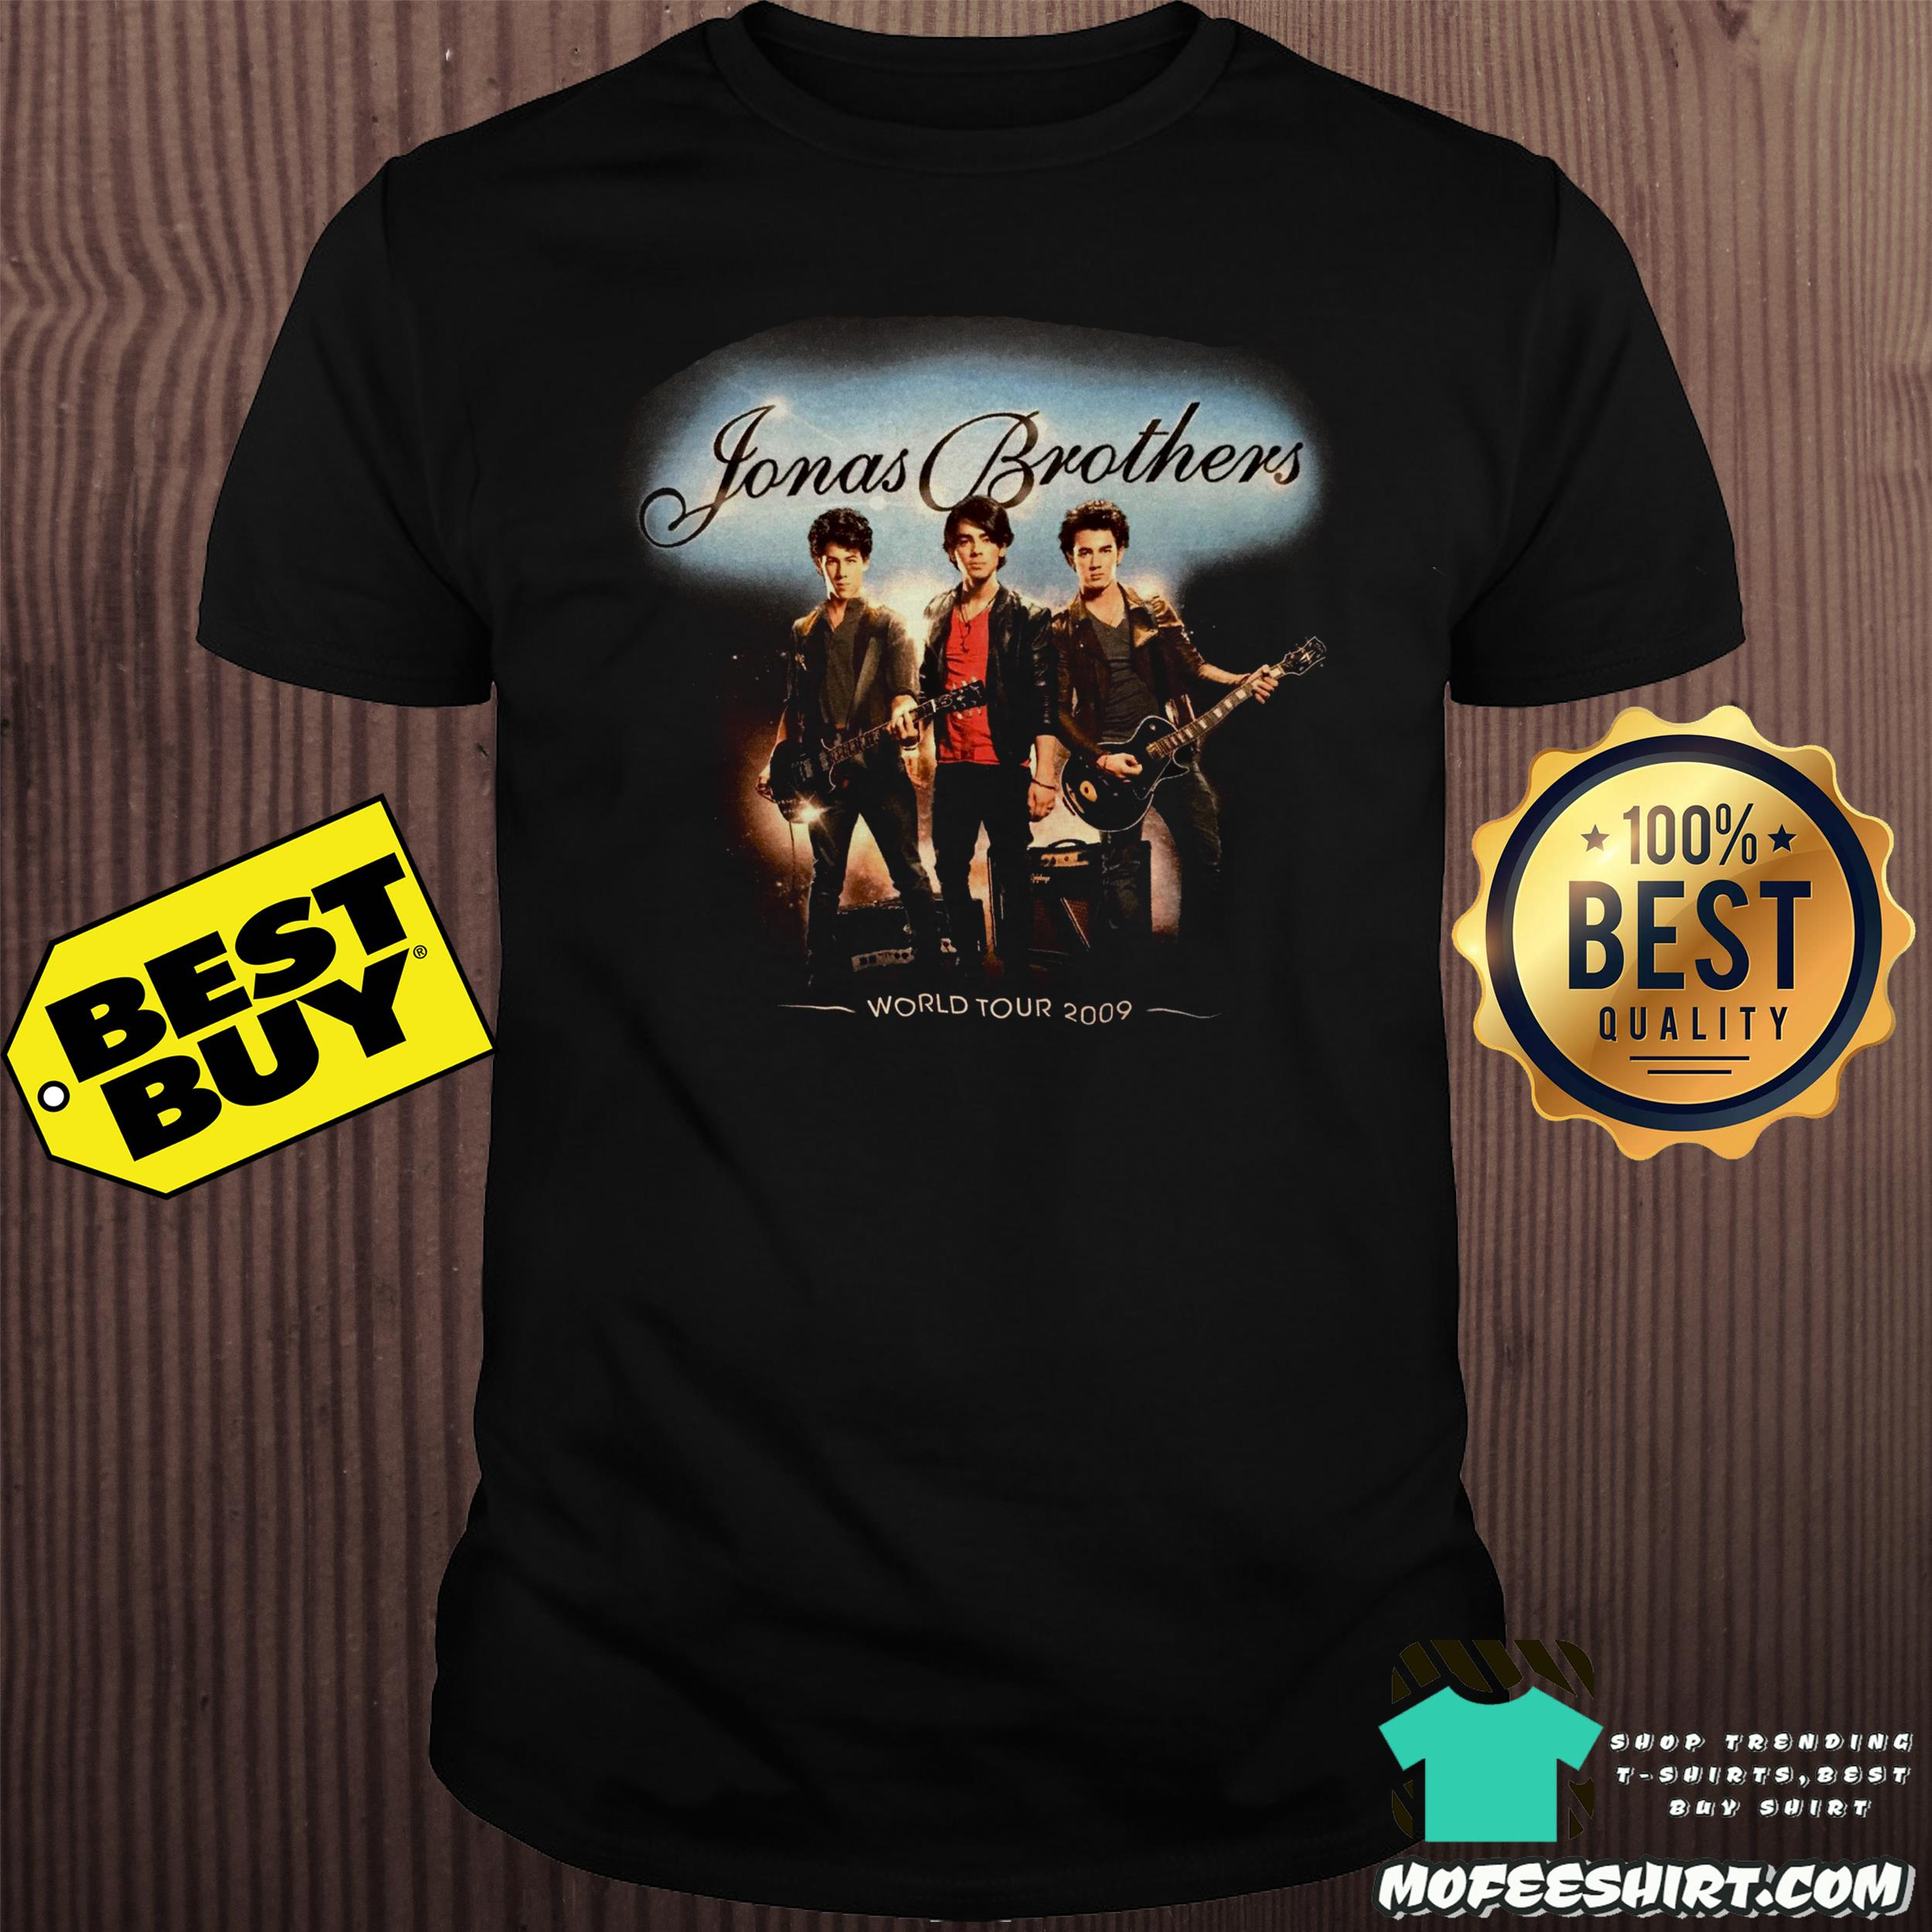 b23d43c33 [Sale 20%] Official Jonas Brothers world tour 2019 shirt